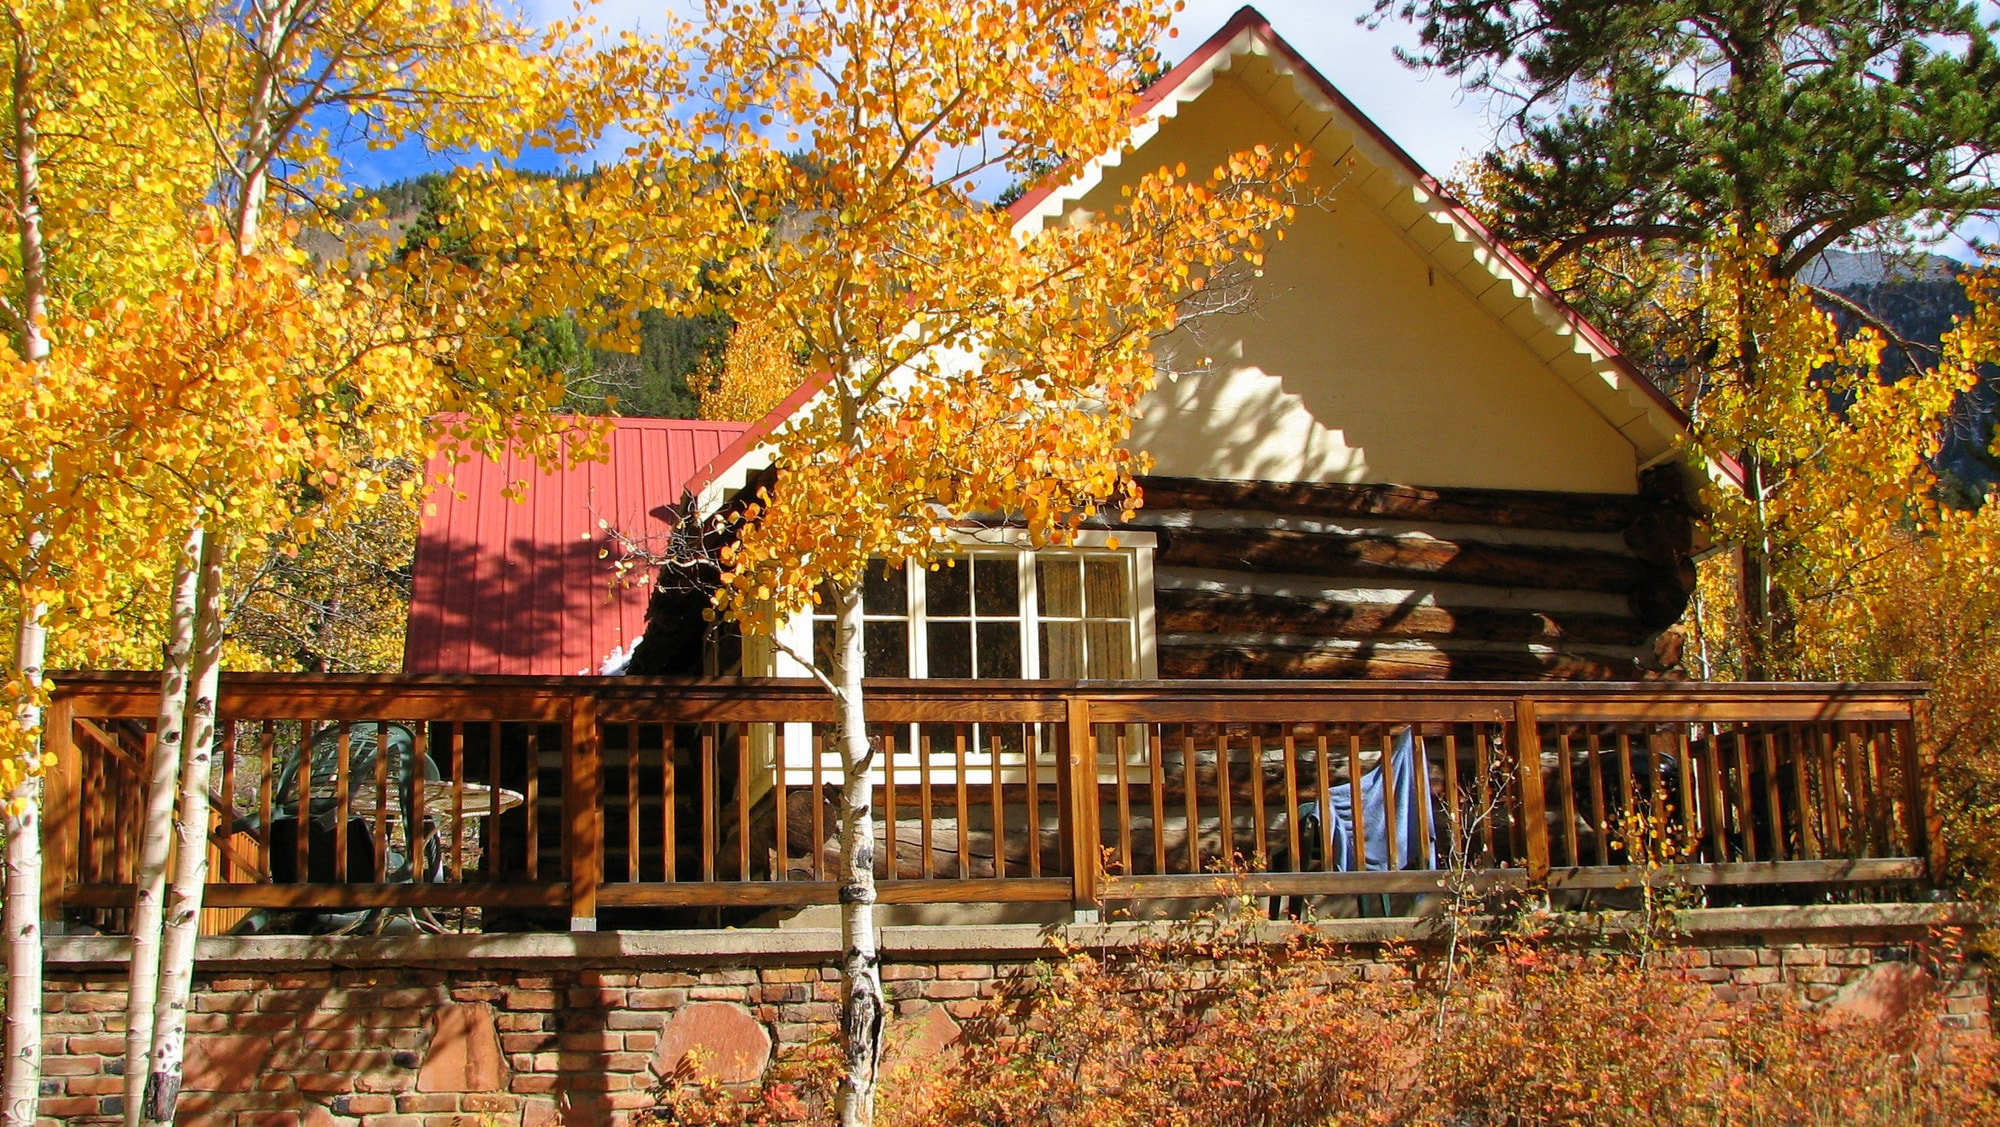 Trails End Cabin in fall dress at Mount Elbert Lodge